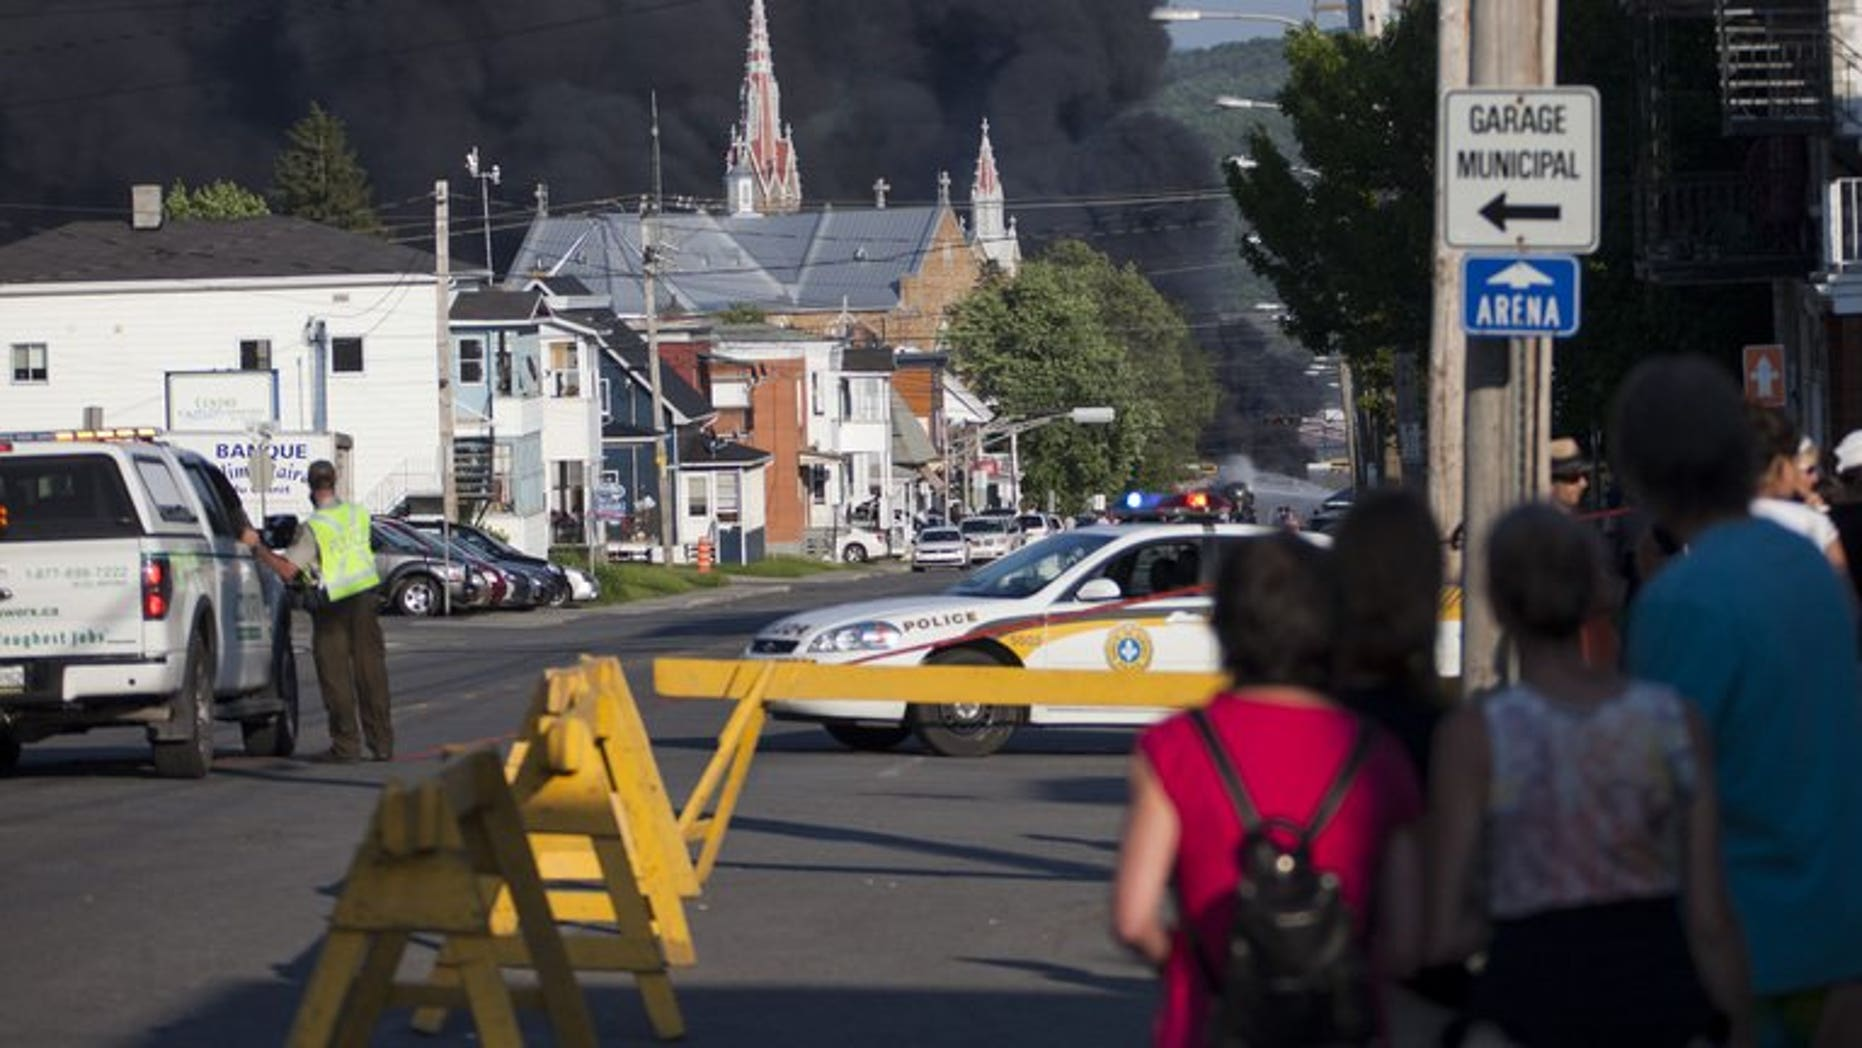 Residents watch rising smoke after a freight train loaded with oil derailed in Lac-Megantic in Canada's Quebec province on June 6, 2013. At least 80 people are missing in the small Canadian town after the accident, a firefighter told AFP.